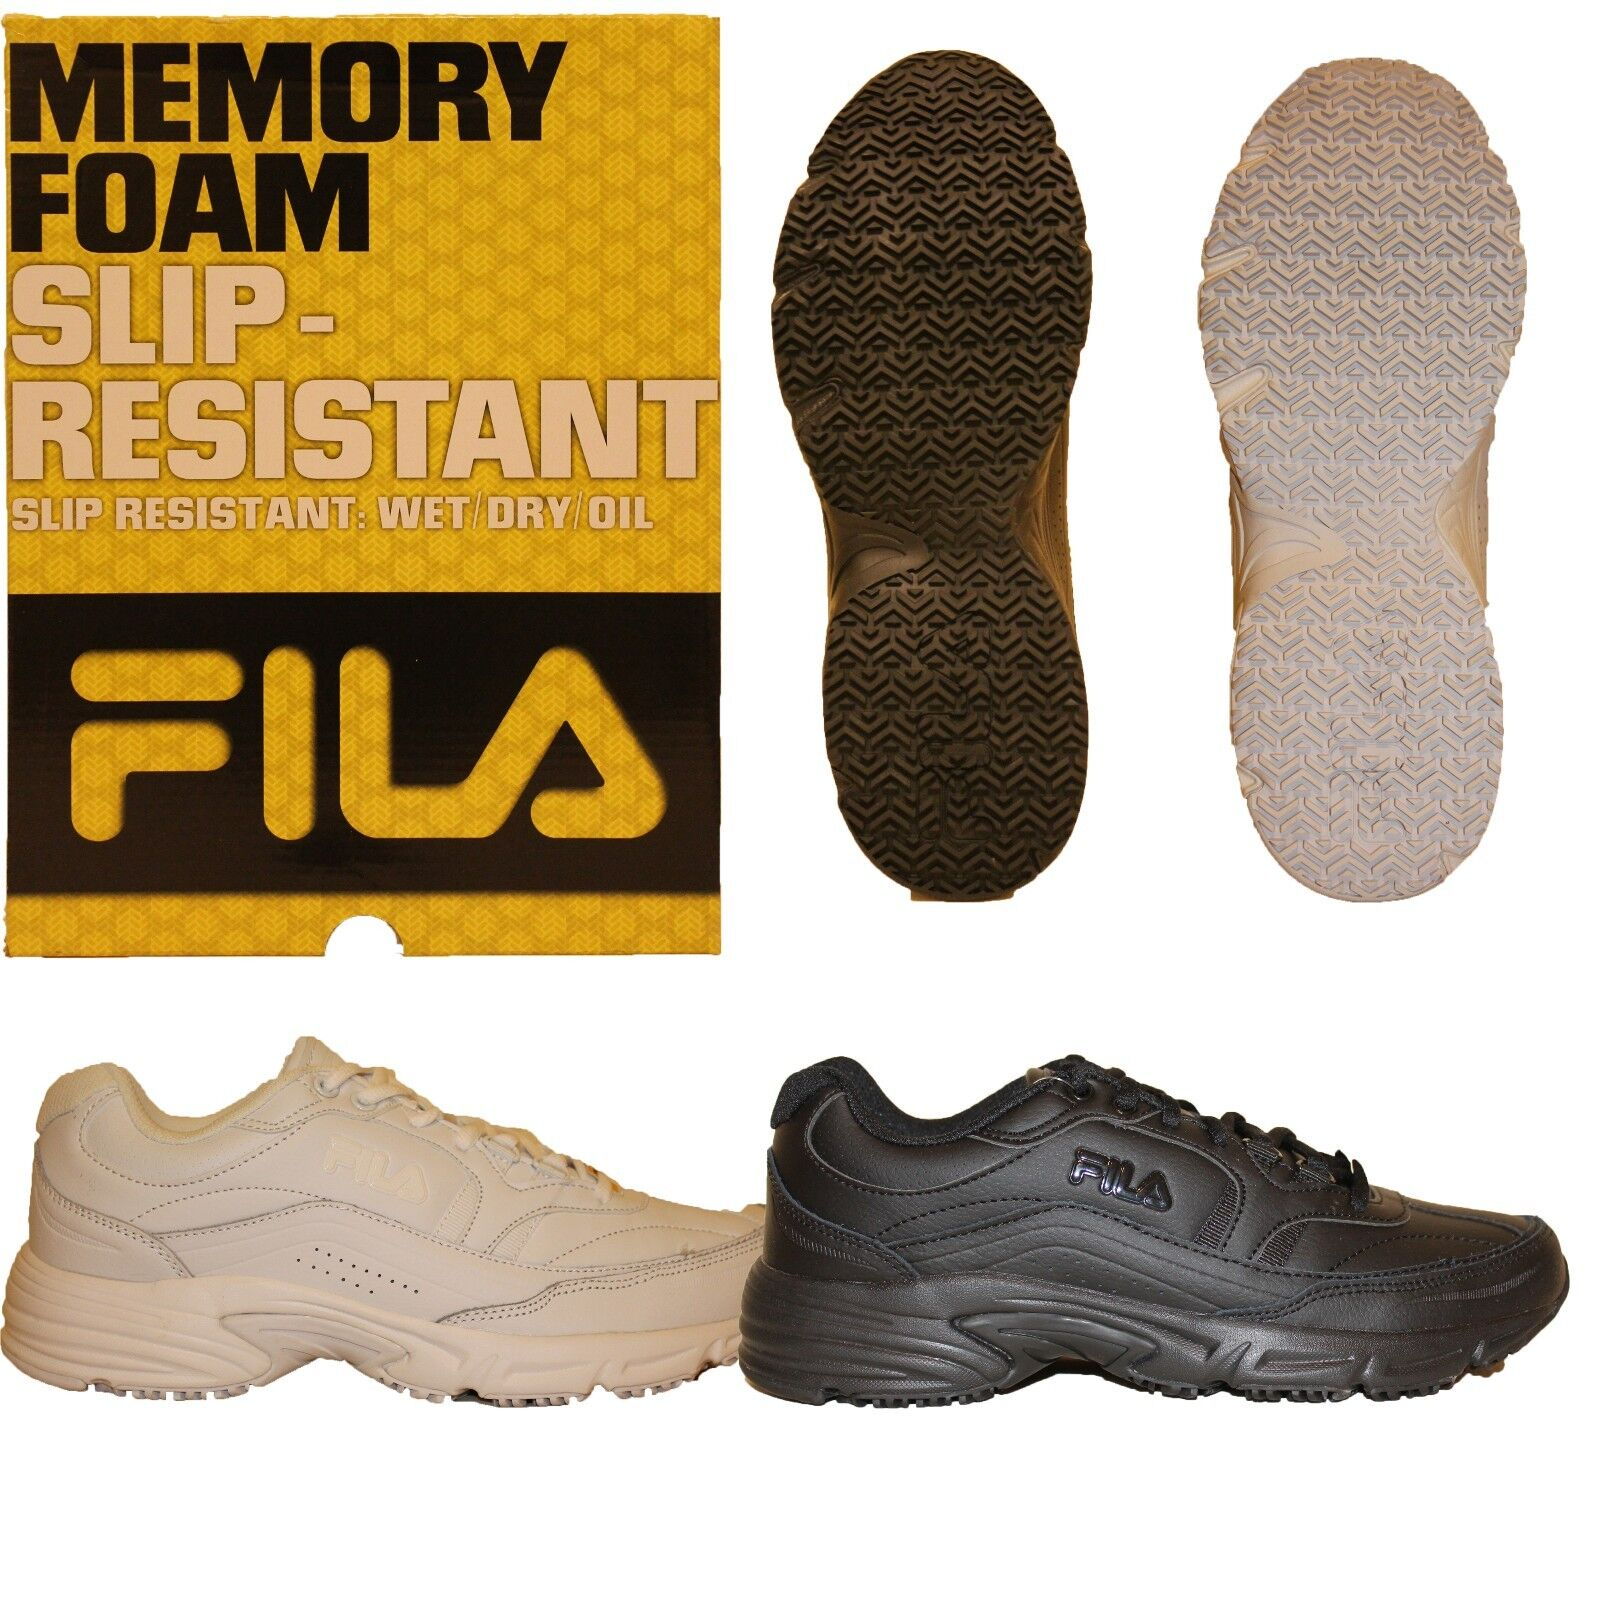 Mens Fila Memory Foam Workshift Non Skid Slip Resistant Work Shoes Black White